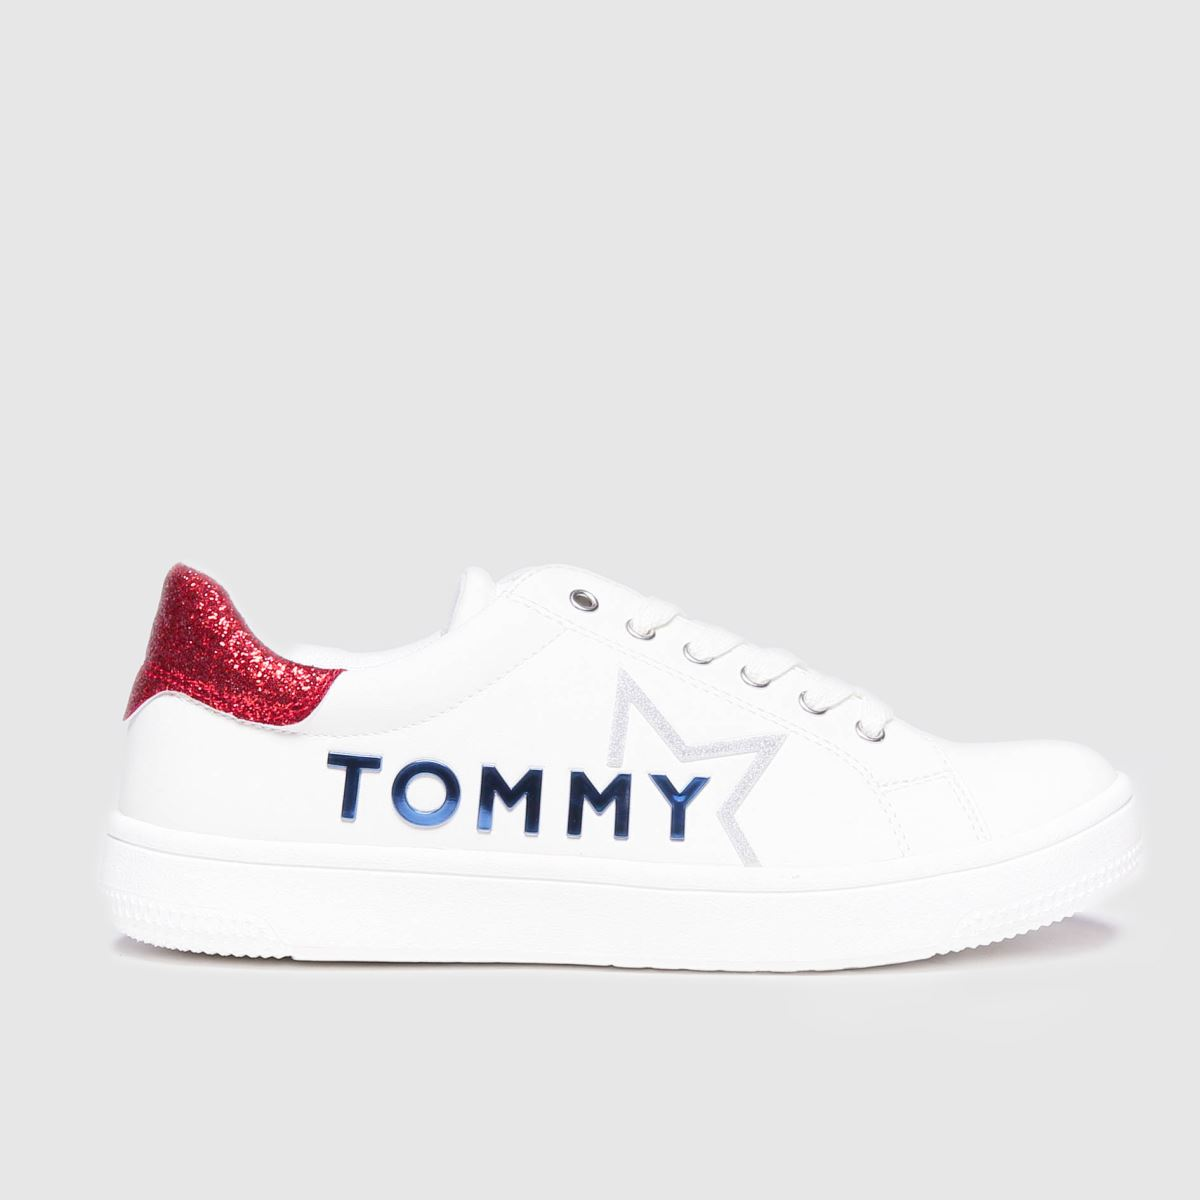 Tommy Hilfiger White & Red Low Cut Lace-up Sneaker Trainers Yout